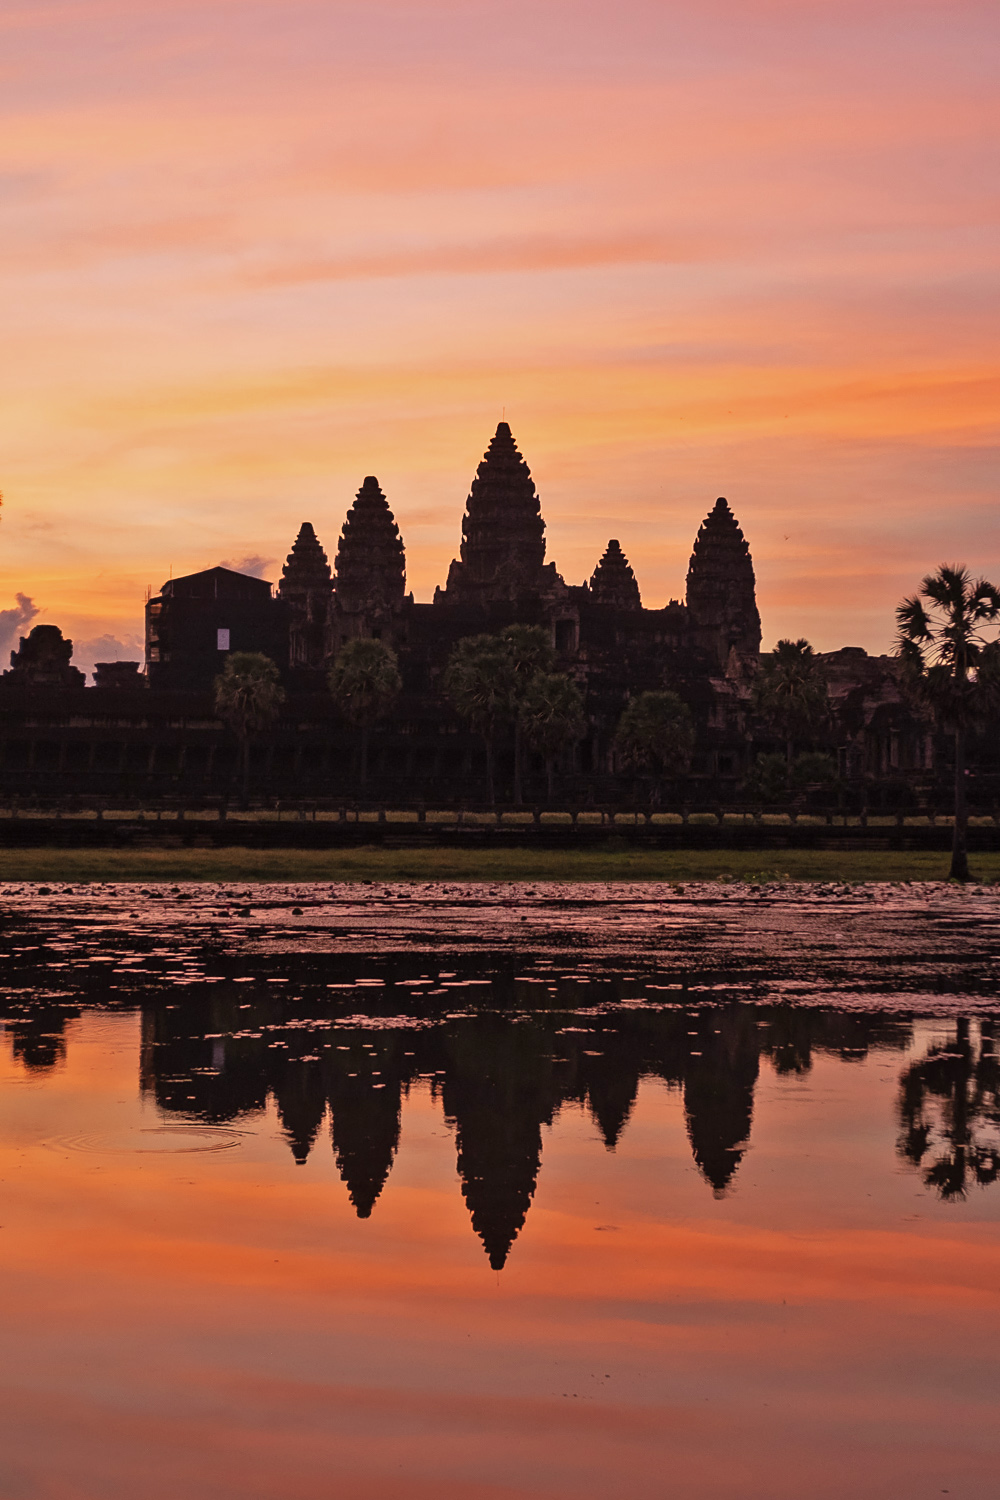 Sunrise at Angkor Wat, a Unesco World Heritage Site and the ultimate expression of the Khmer Empire | Siem Reap, Cambodia | Mondomulia